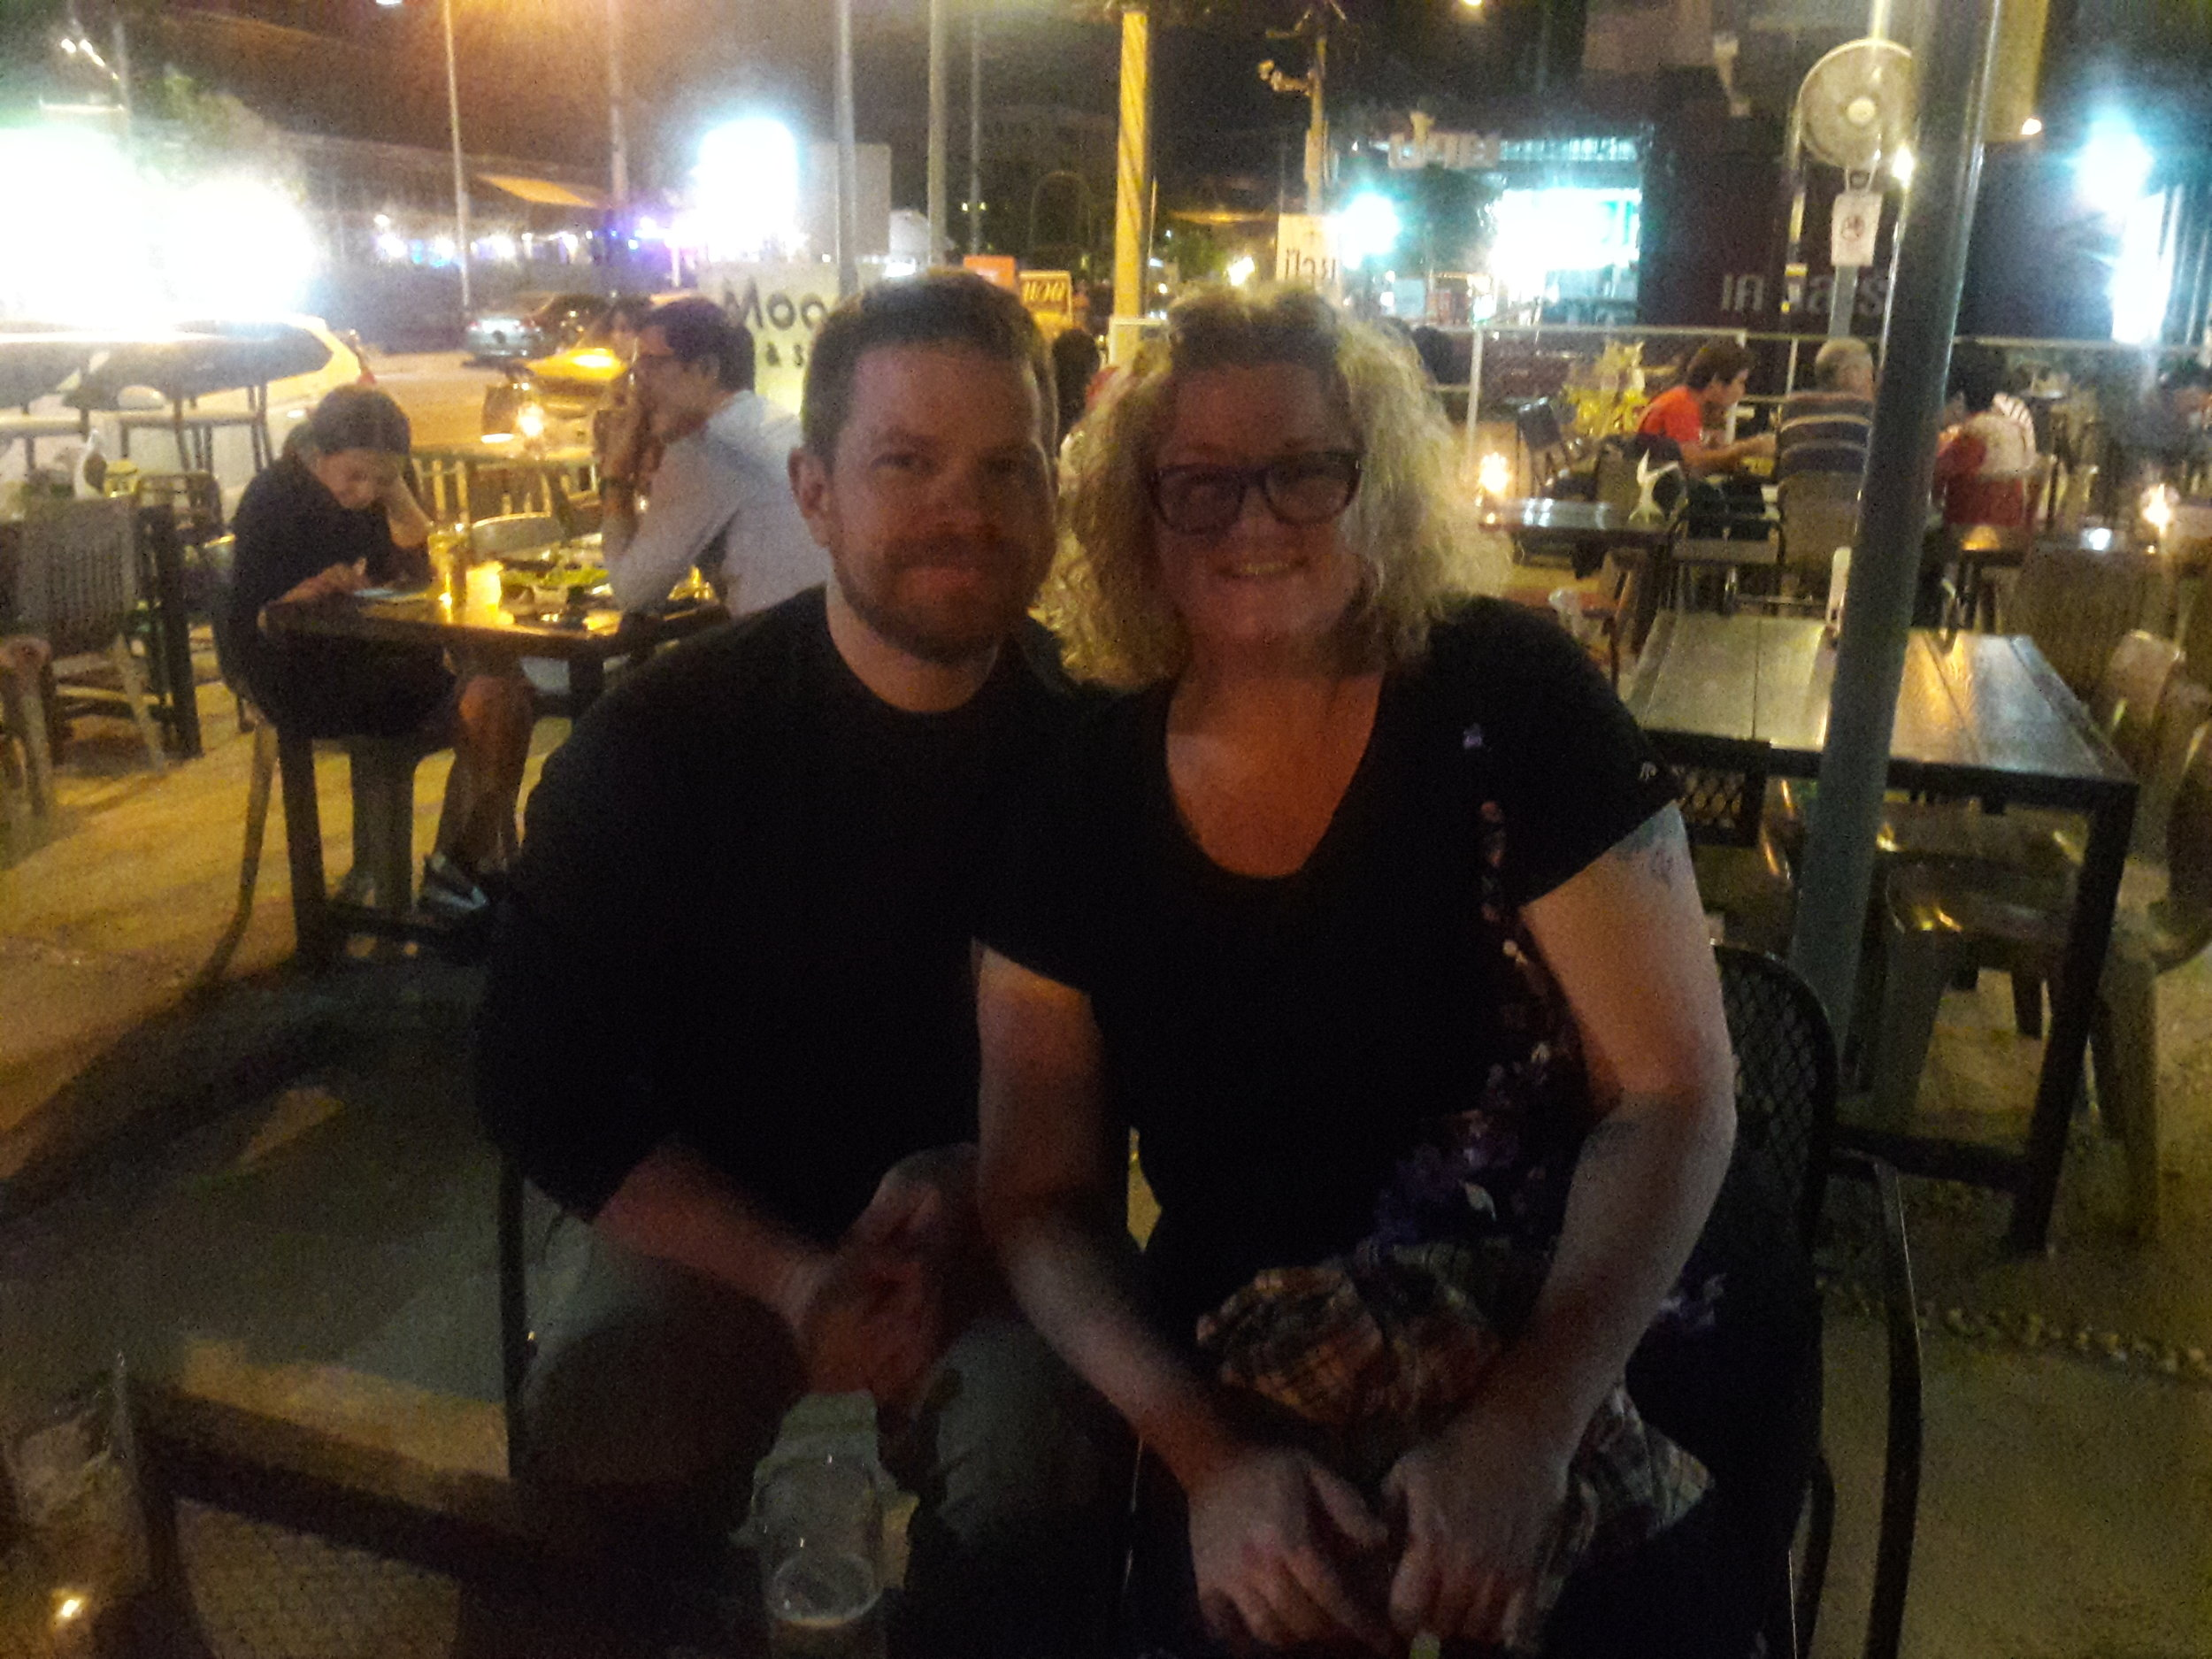 Tracy and her husband, Bryan, enjoying dinner in Mae Sot.